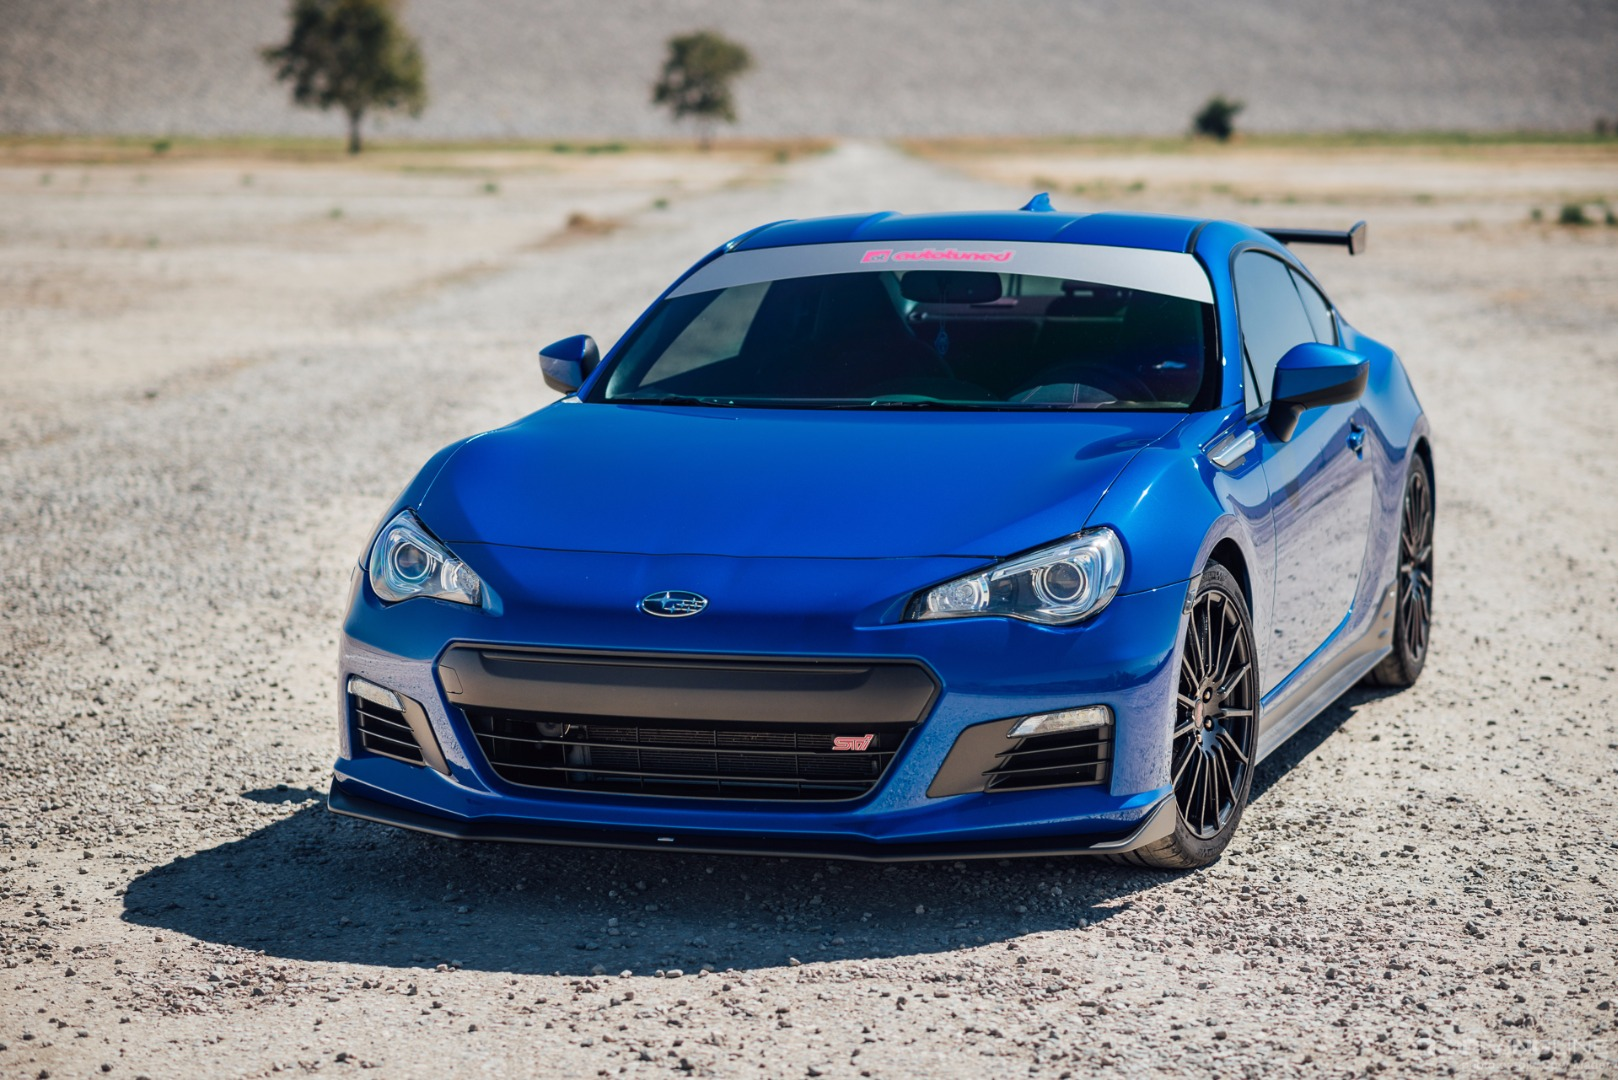 Build Your Own Subaru >> Build-Your-Own tS: Transforming a Subaru BRZ, Piece by ...